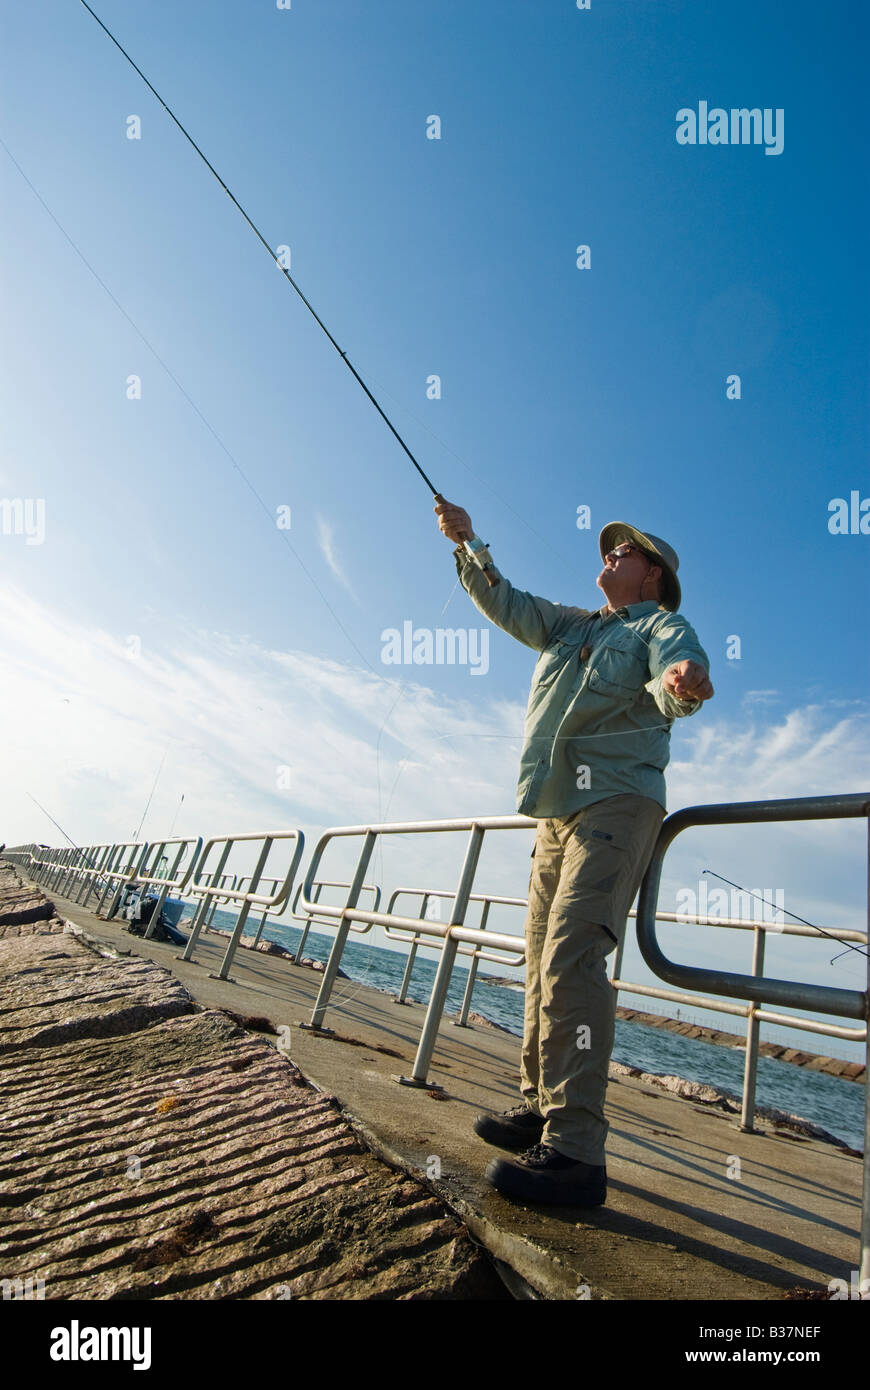 Fly fishing off the Packery Channel jetty on Mustang Island Texas Gulf Coast - Stock Image